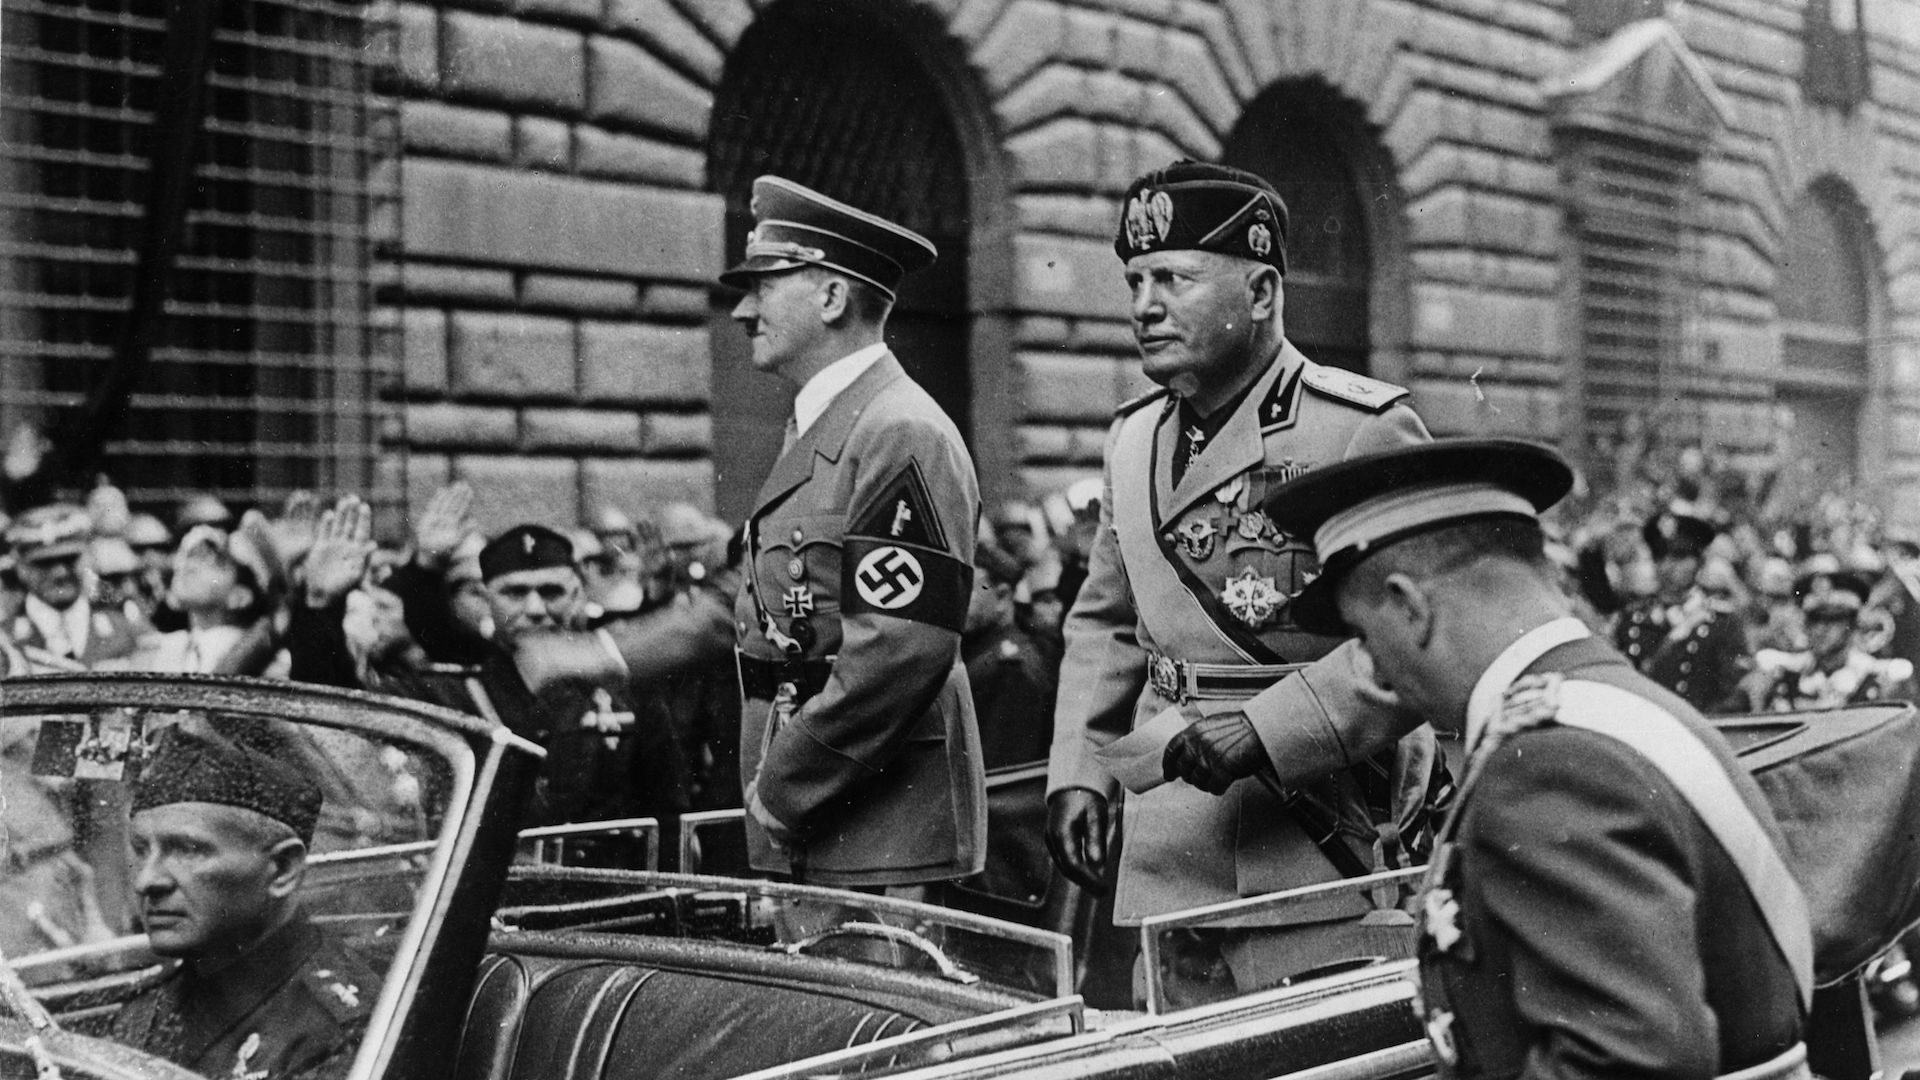 May 9, 1938: Fascism leaders, German dictator Adolf Hitler and Italian dictator Benito Mussolini standing in the back of a car, on display as they drive through Rome.